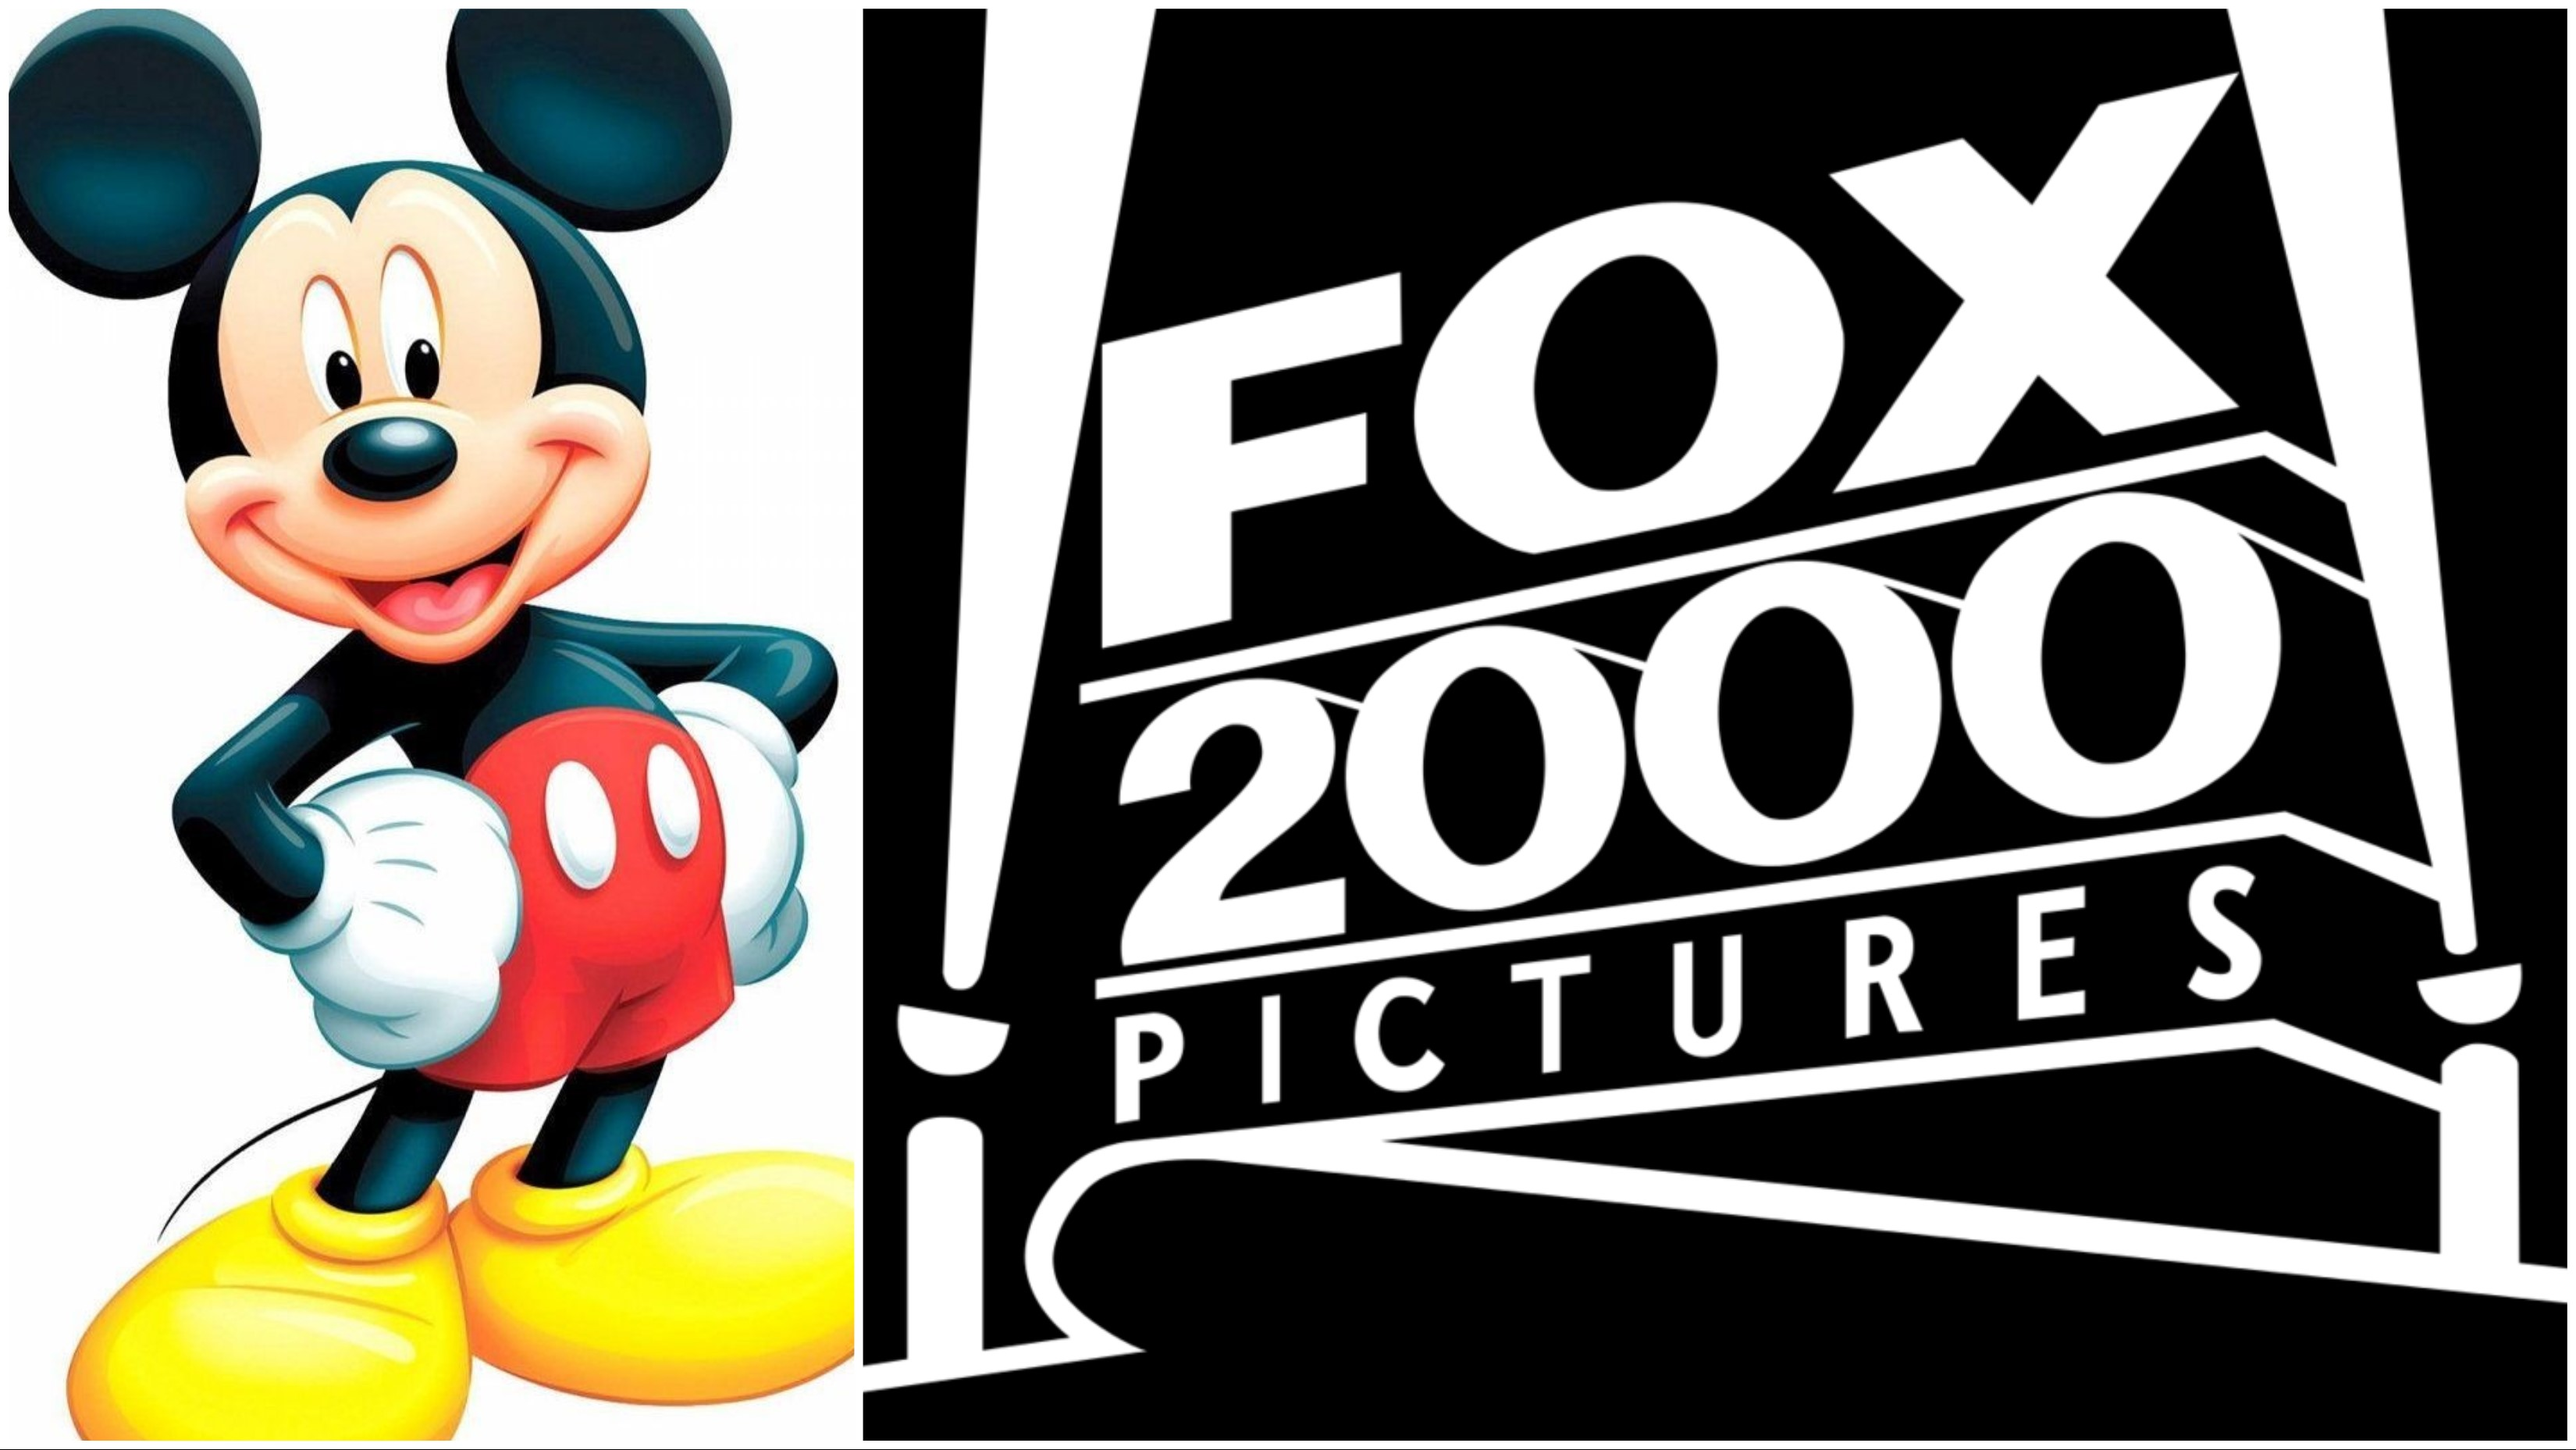 Disney Shutting Down Fox 2000 Studio